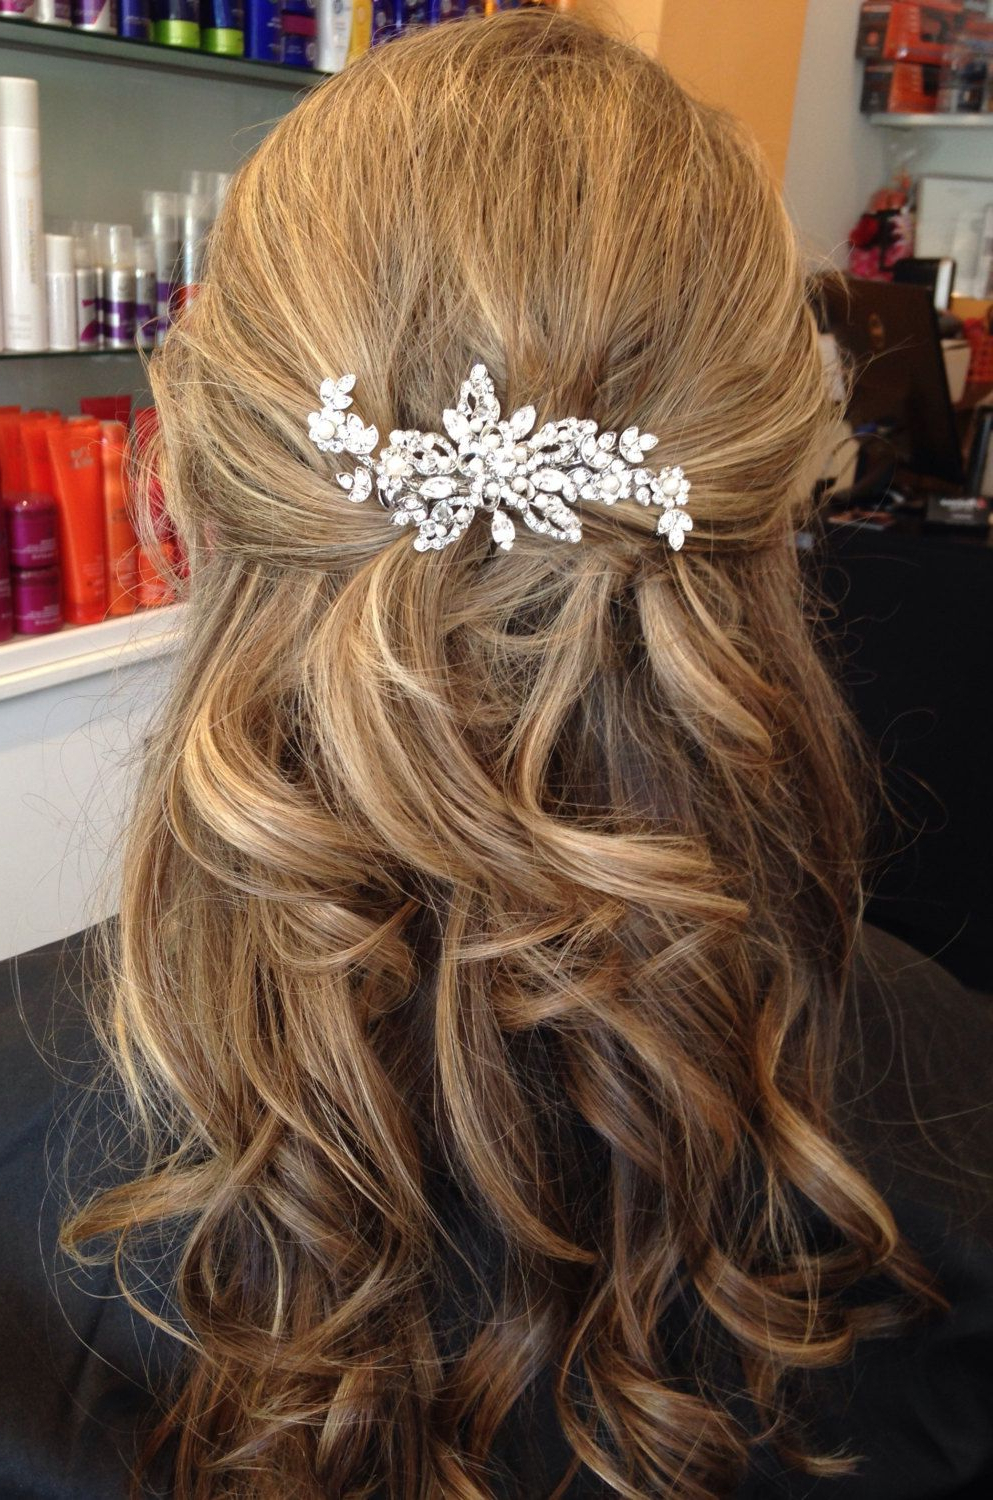 Bridal Hair Accessory. Rhinestone Wedding Hair Clip (View 2 of 20)